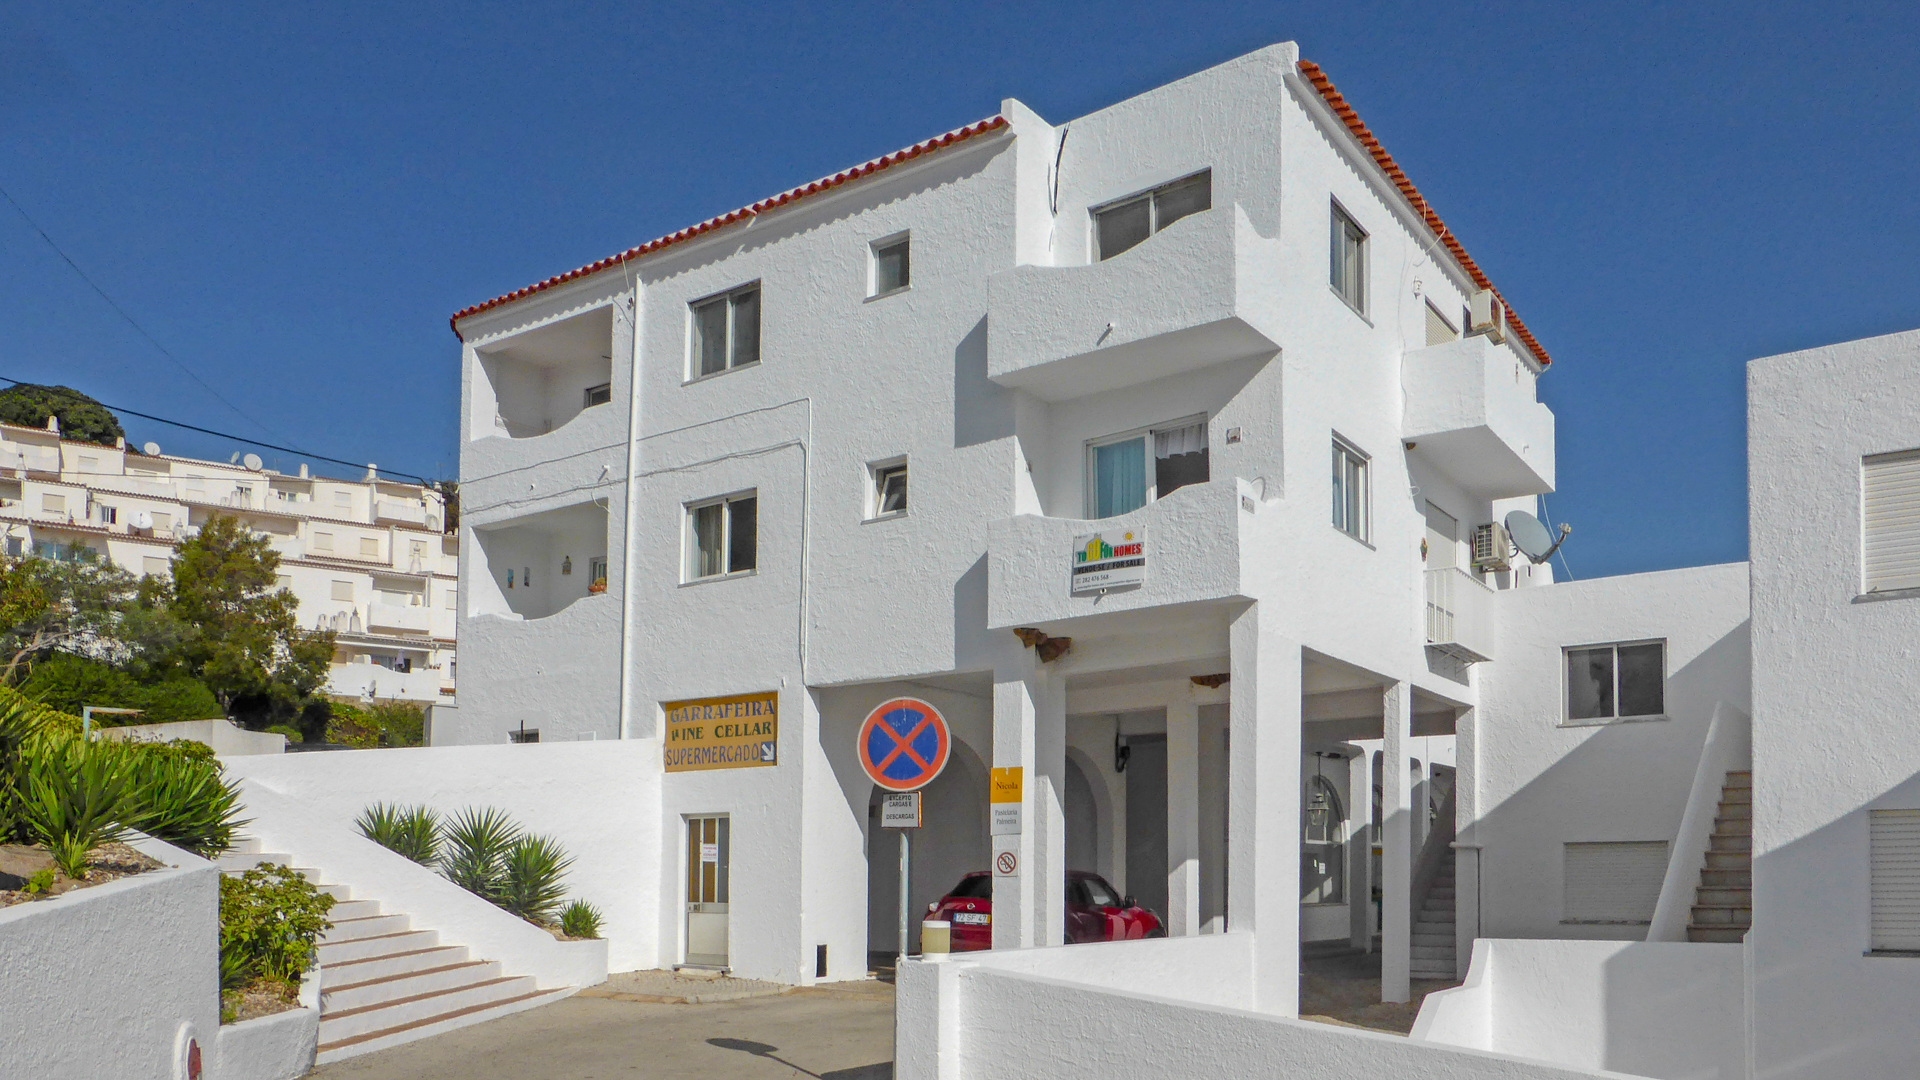 3 bedroom apartment with communal pool, close to beach, Salema, West Algarve | LG960 A 3 bedroom first floor apartment with communal pool and sea views located in a central position close to amenities and within walking distance of Salema beach in the West Algarve.